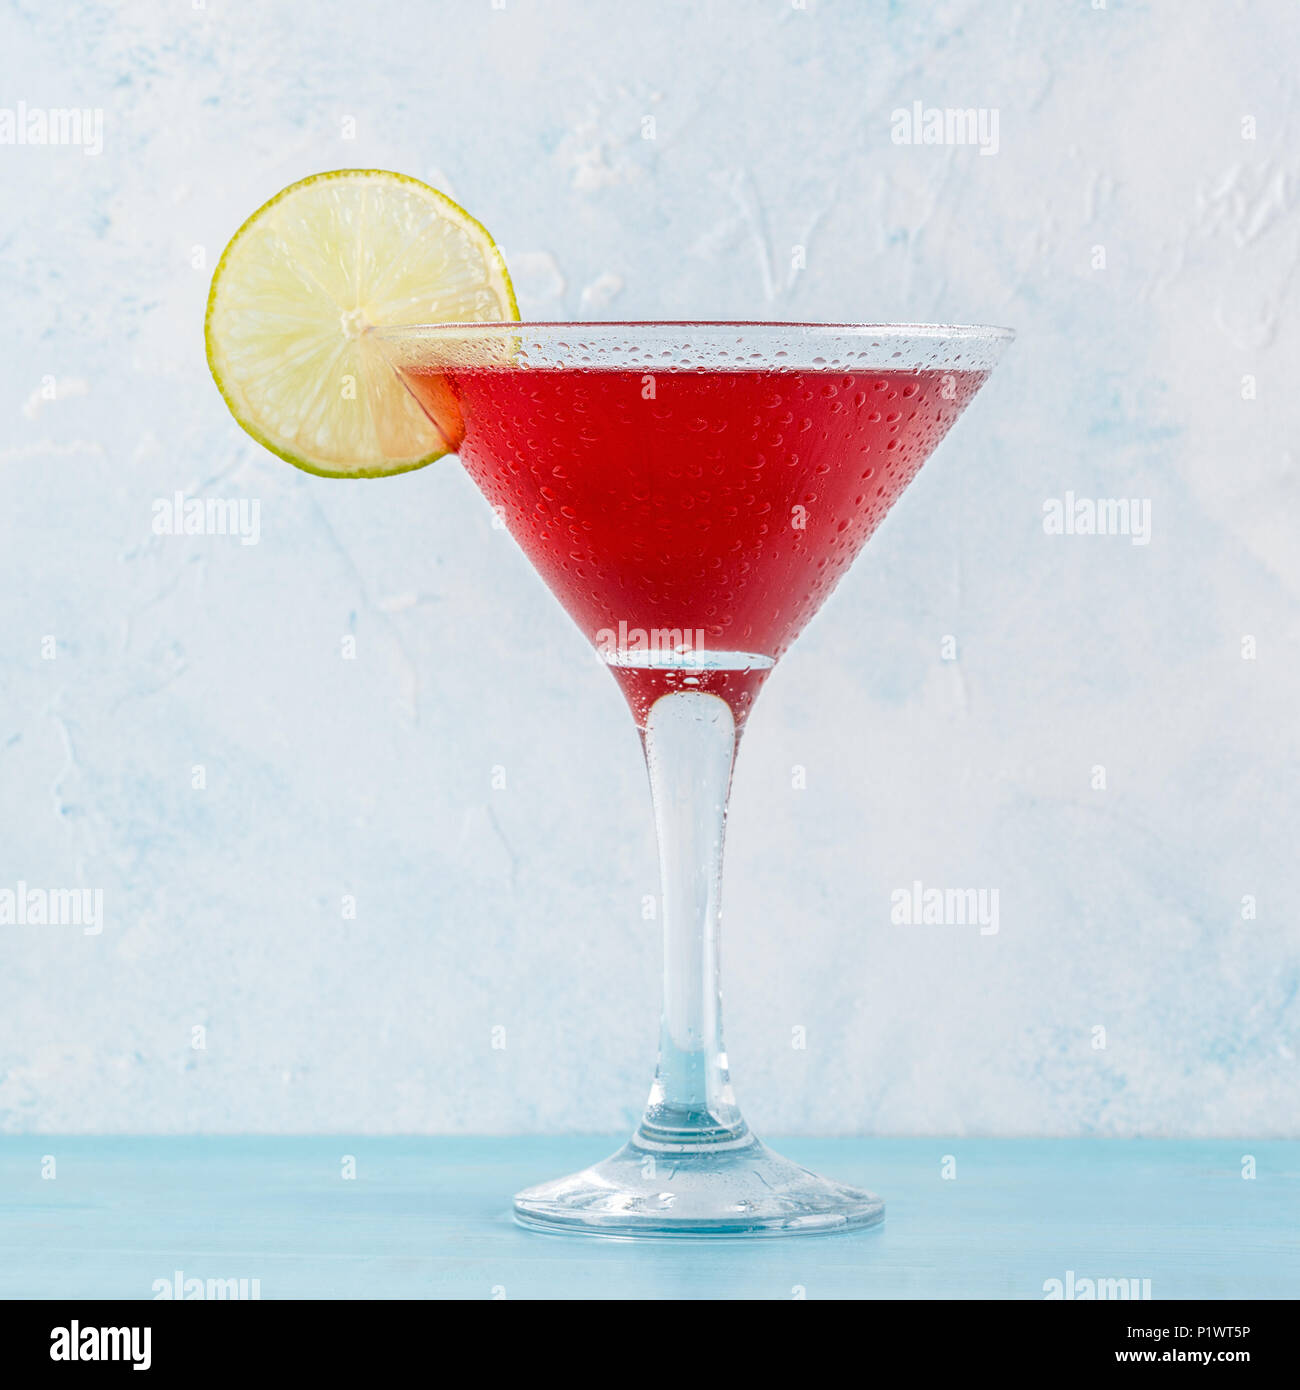 Cosmopolitan Cocktail Stock Photos & Cosmopolitan Cocktail